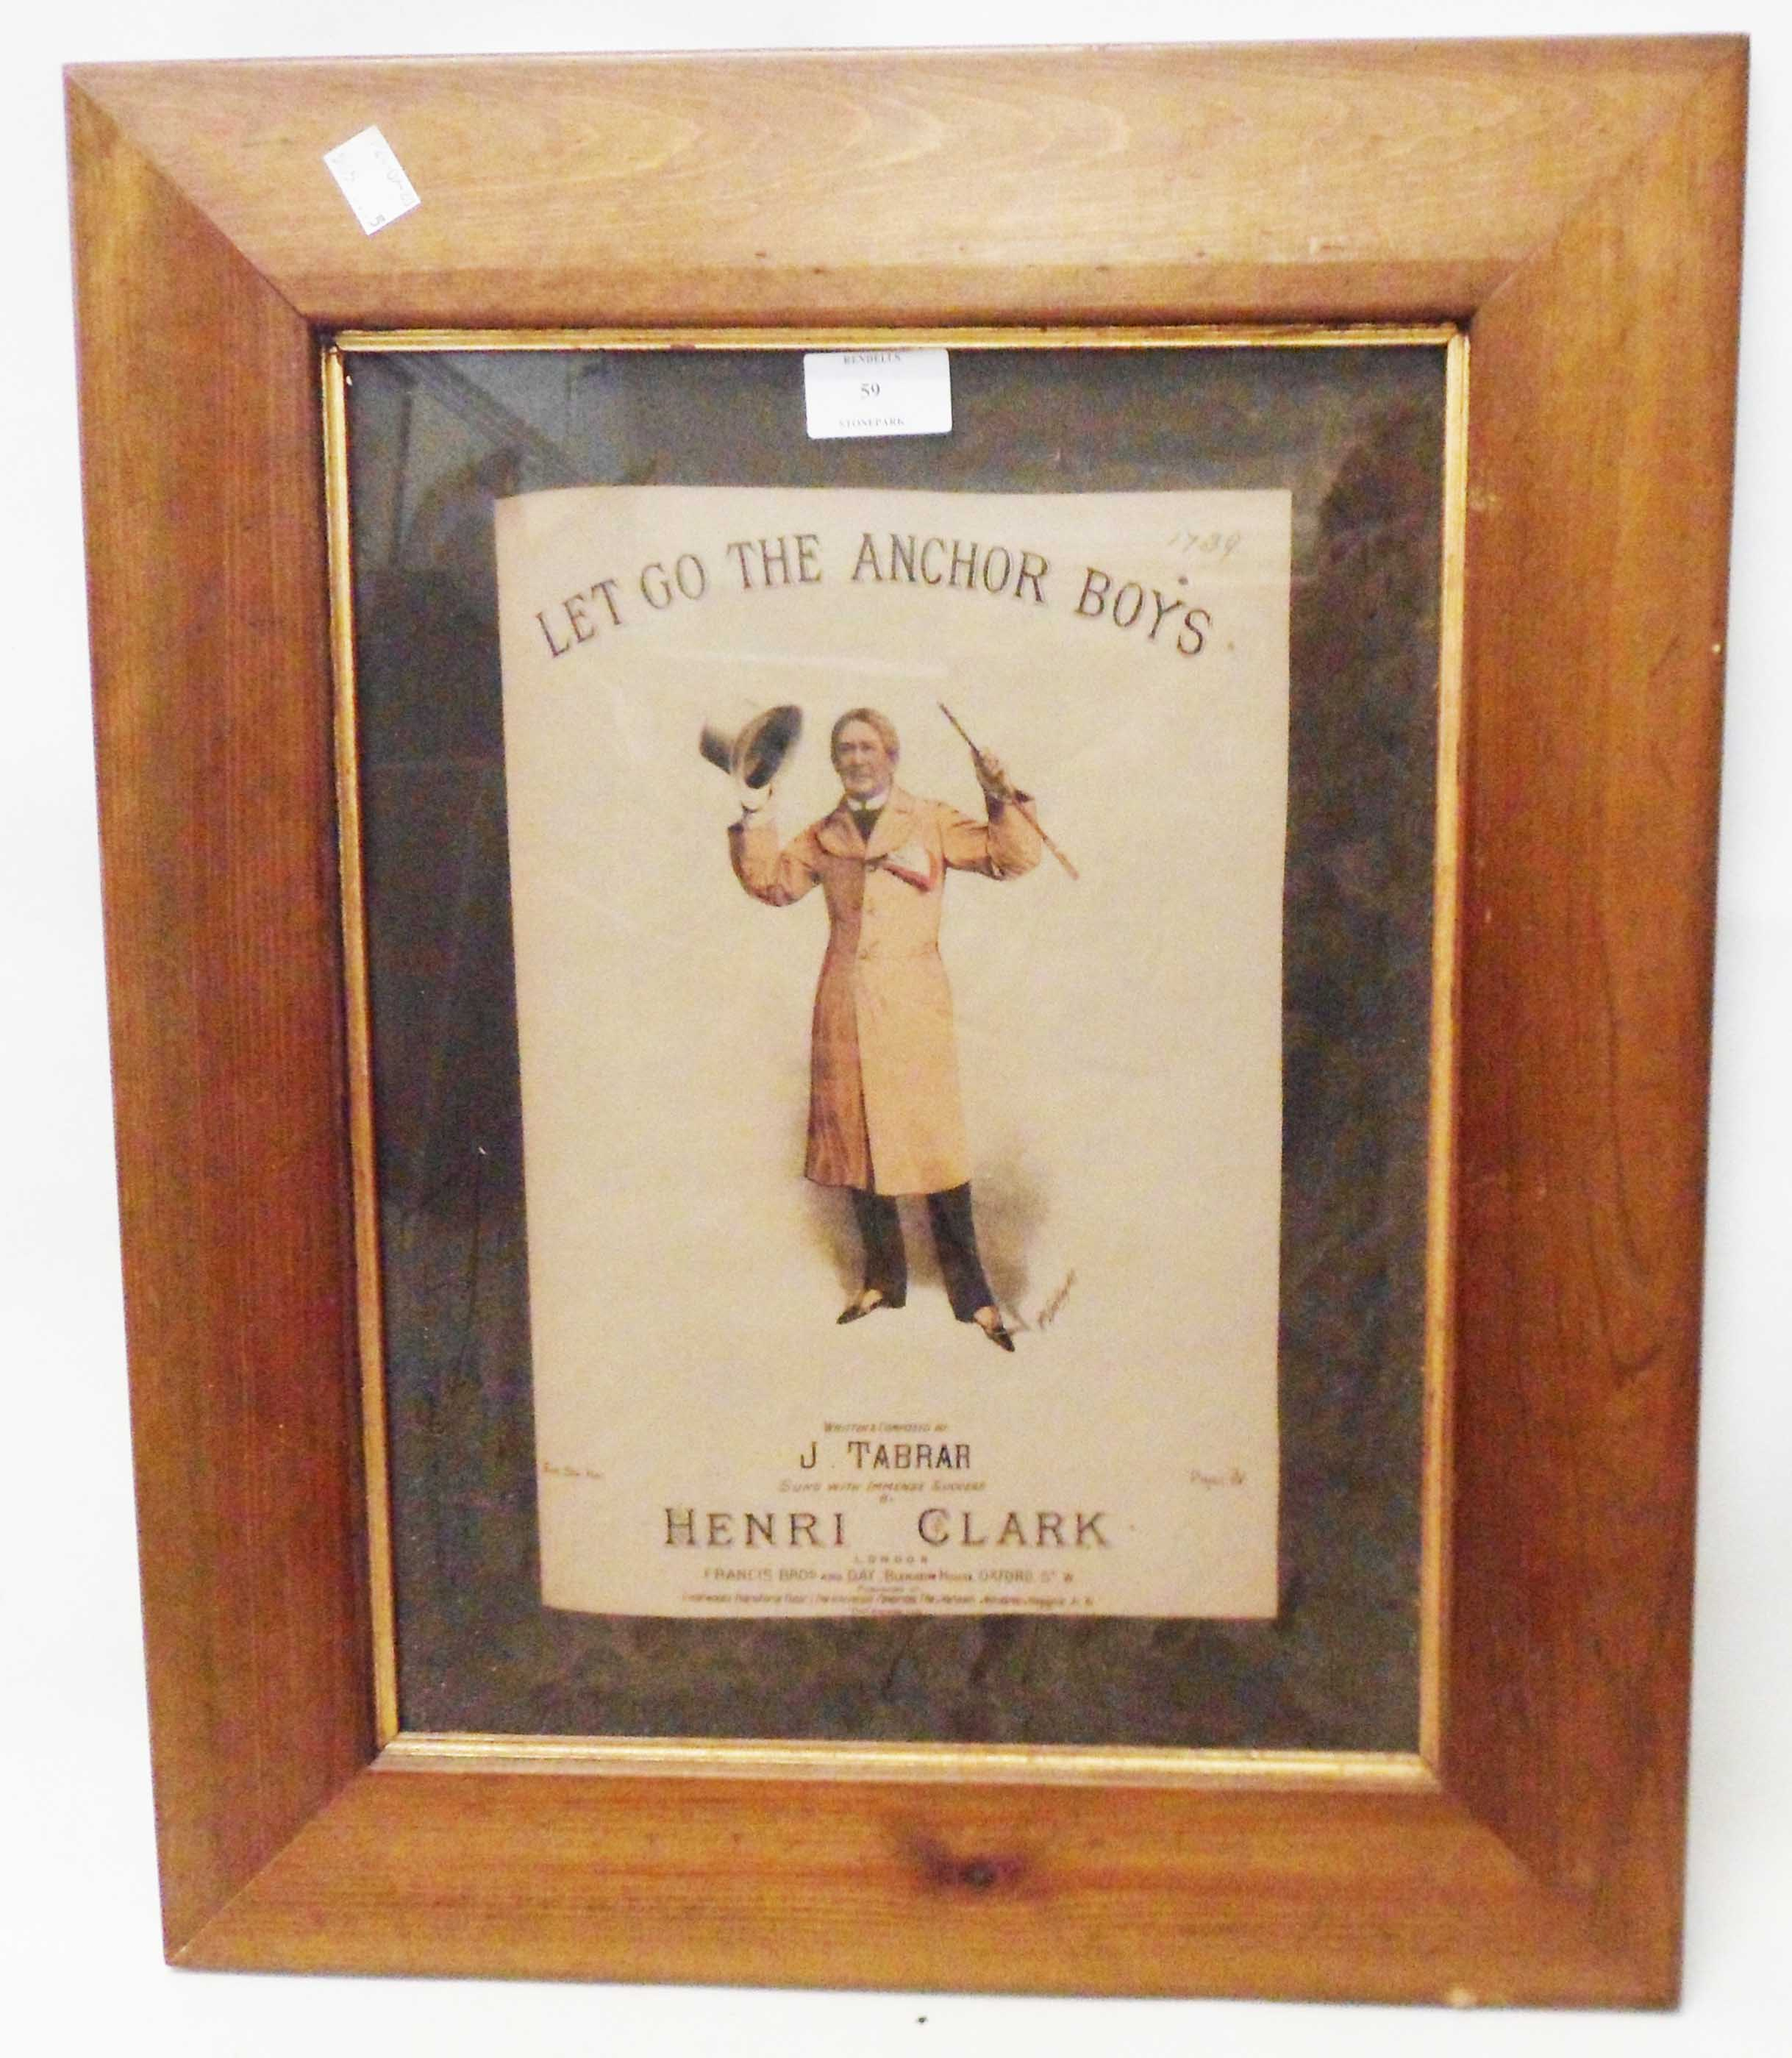 A framed songsheet cover for Let Go the Anchor Boys sung by Henri Clark